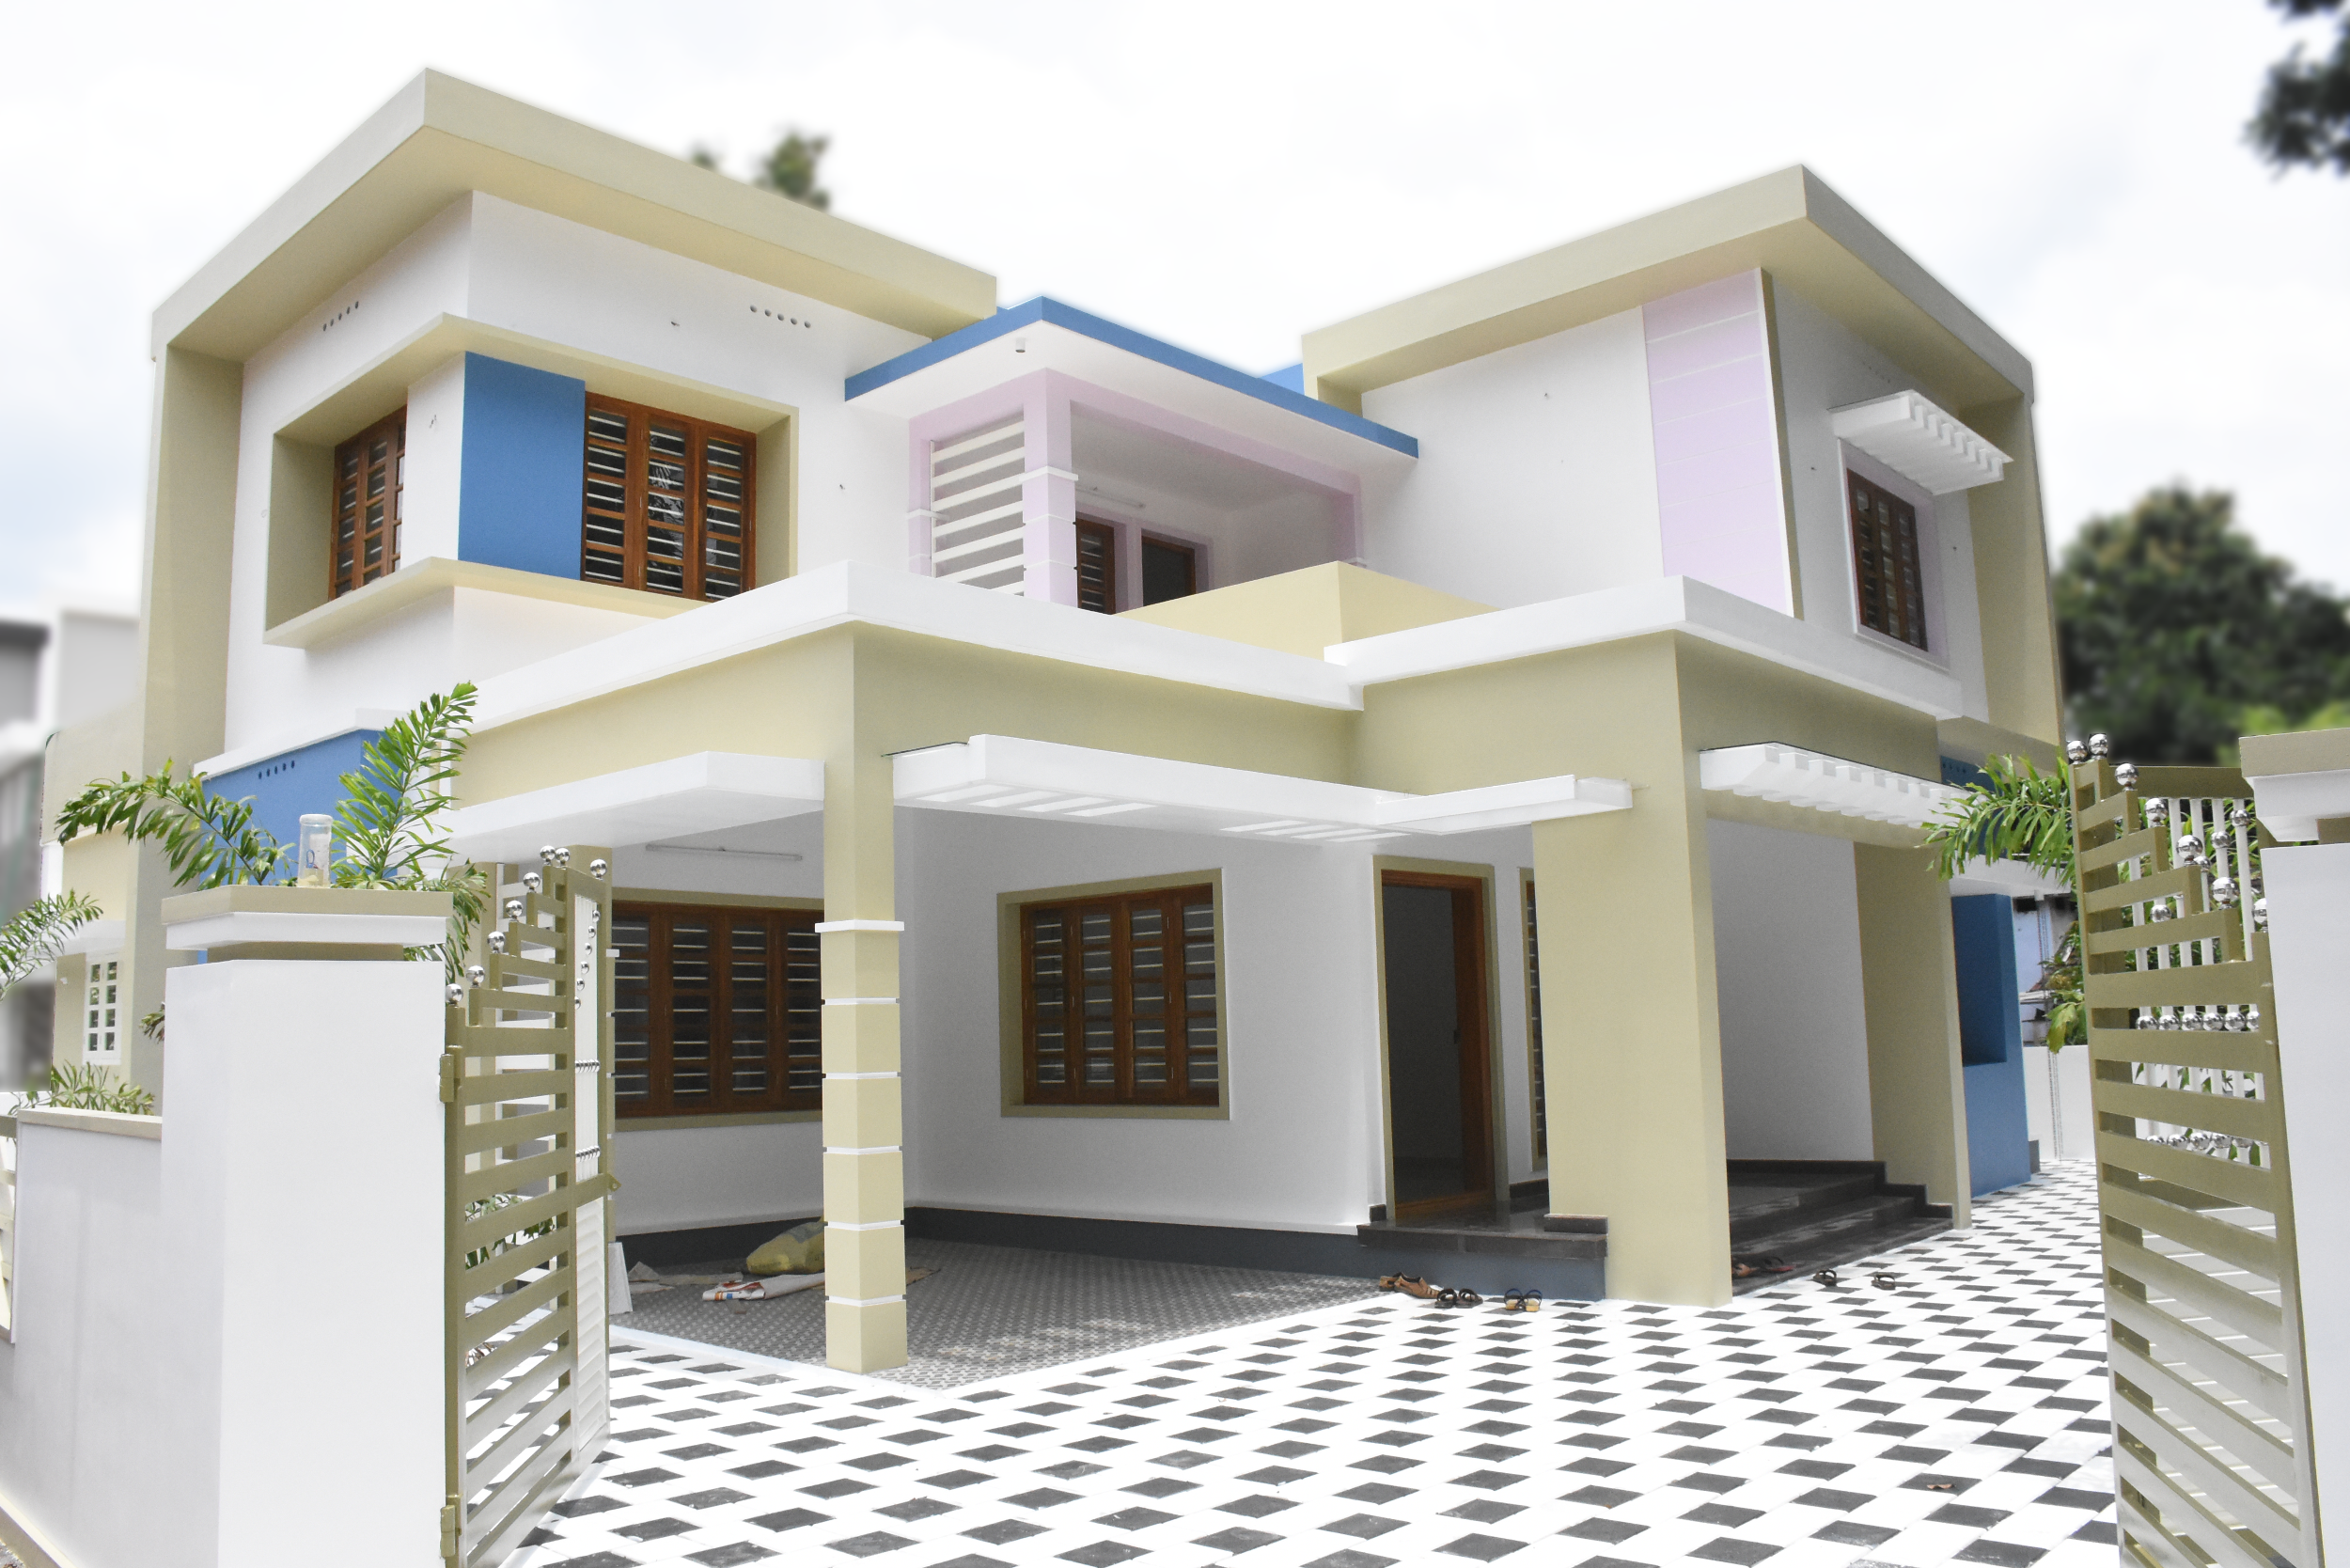 House designs beautiful house models house architectures for Best modern home plans